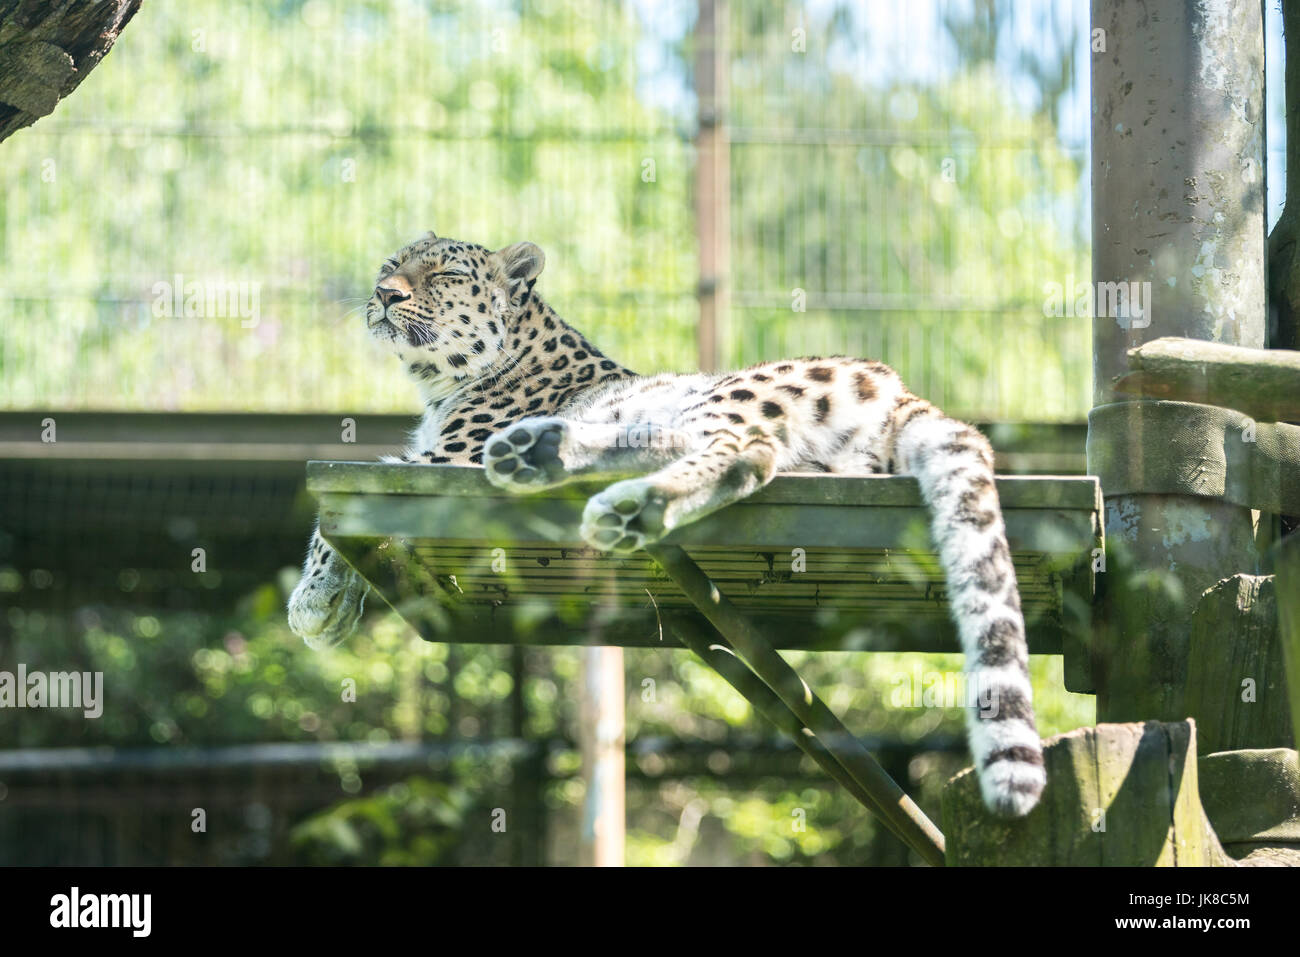 Amur Leopard (Panthera pardus orientalis) relaxing on a small platform - Stock Image